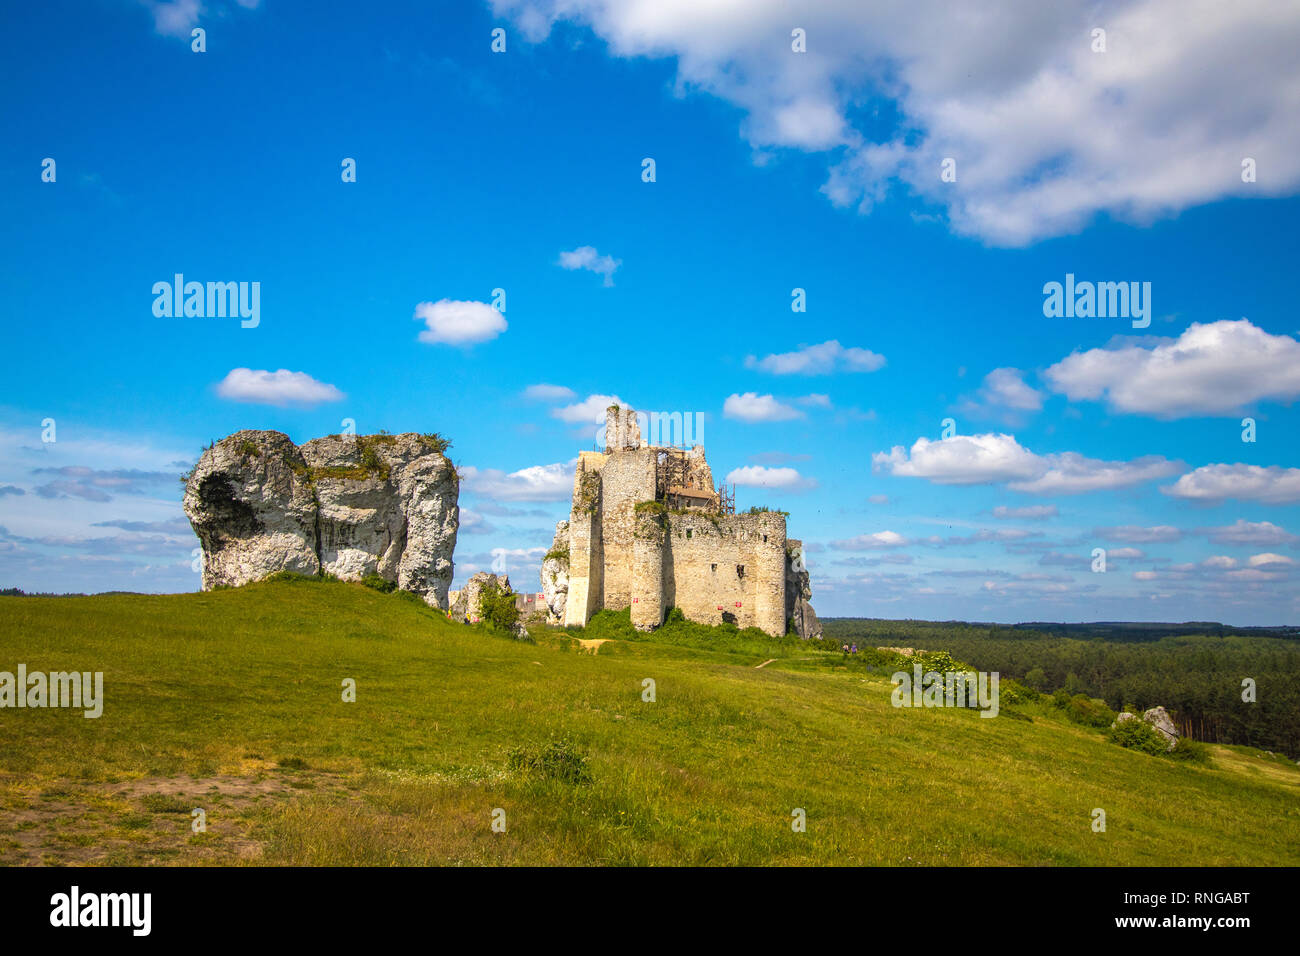 Picturesque Ruins of castle Mirow - Stock Image